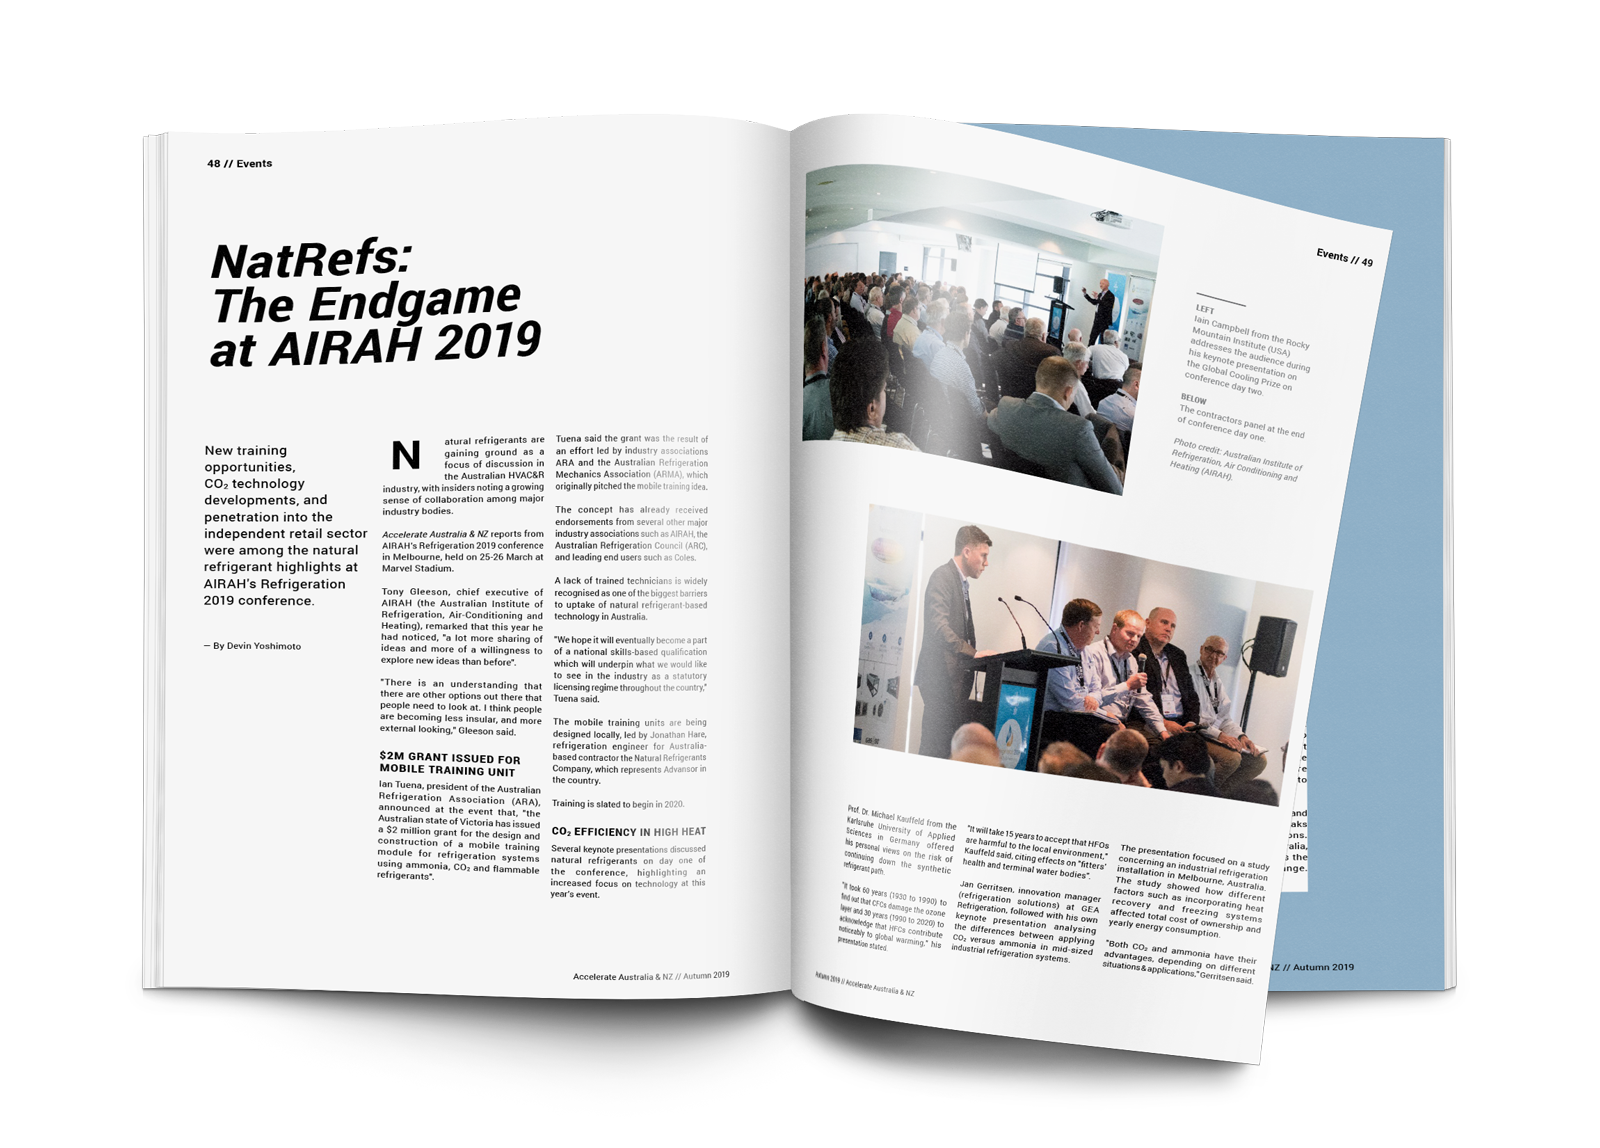 NatRefs: The Endgame at AIRAH 2019